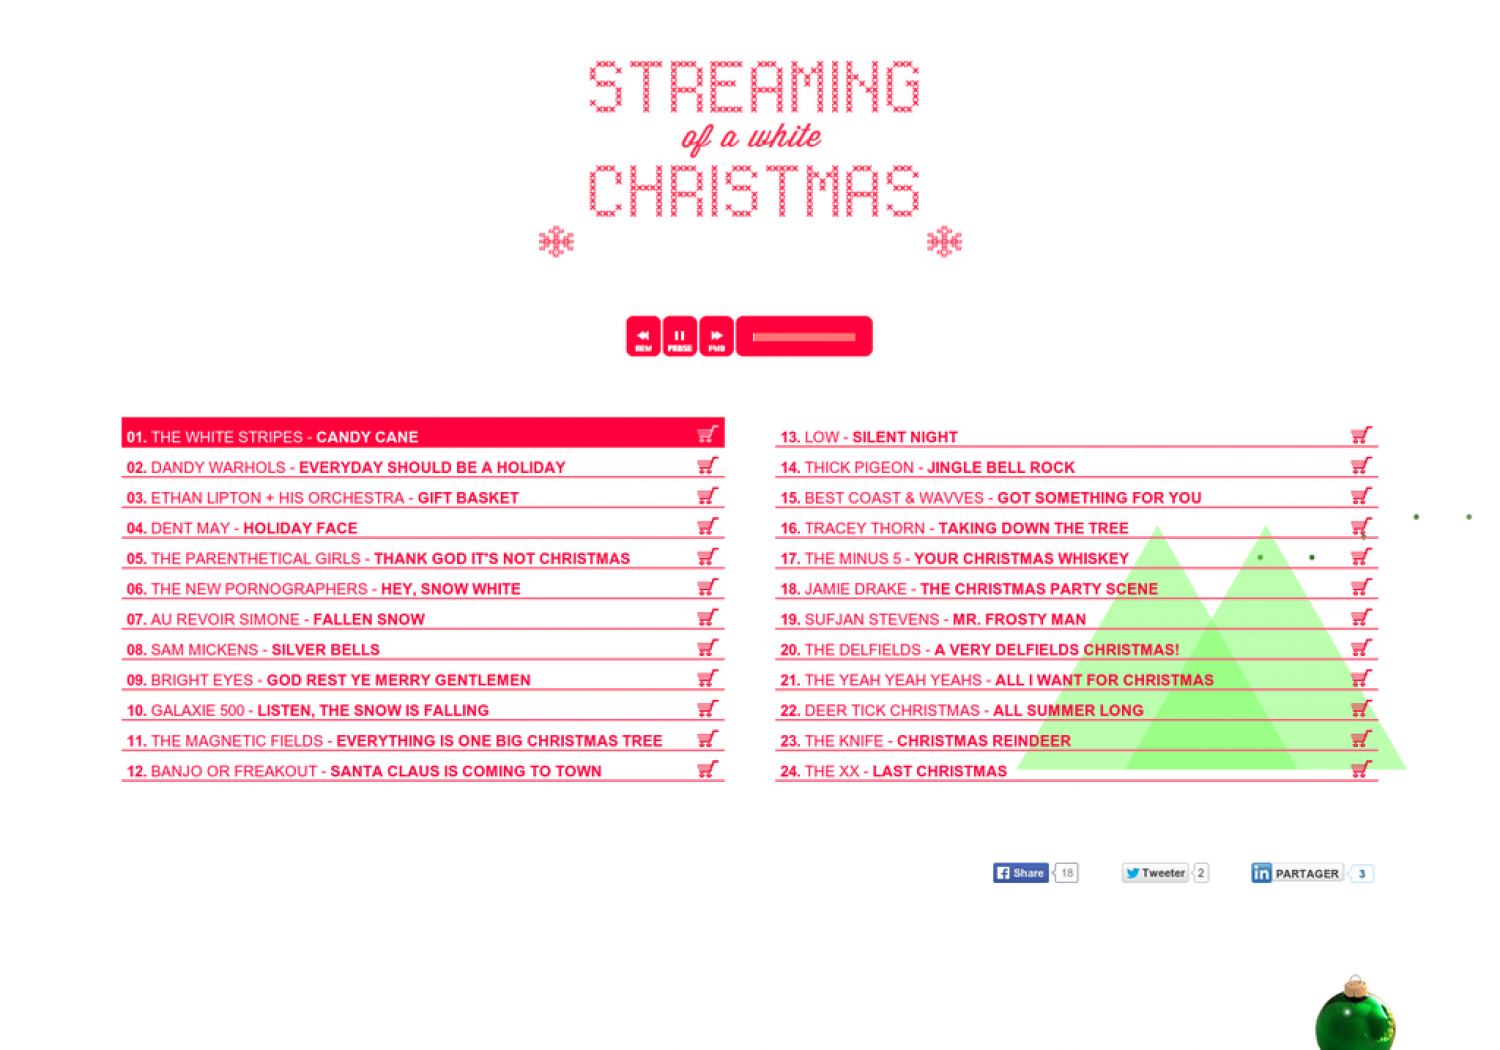 Streaming of a white Christmas Infographic